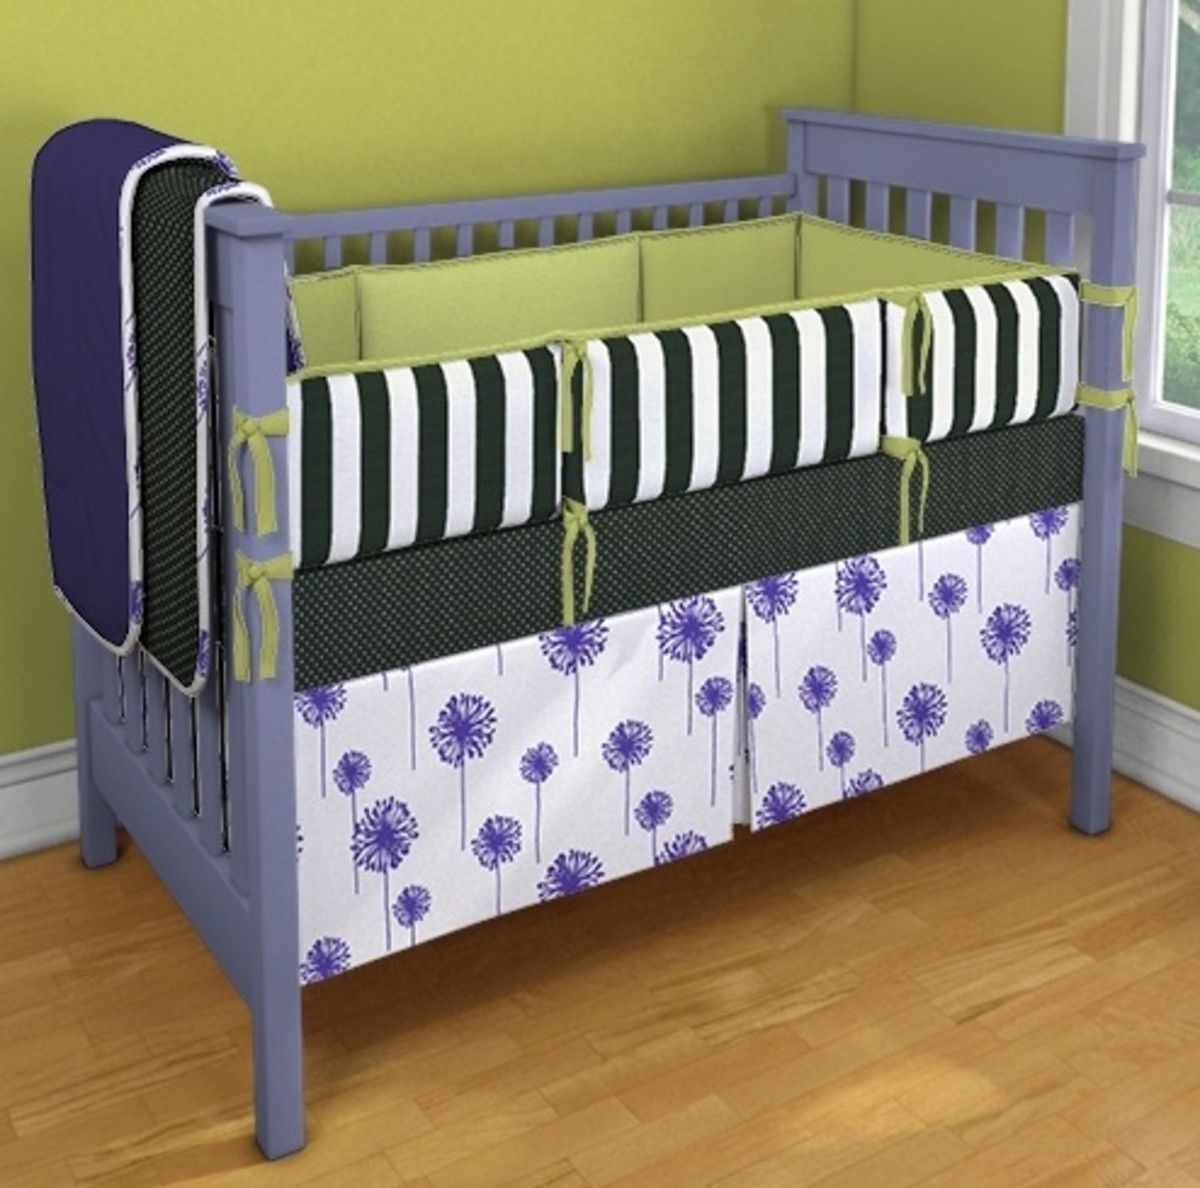 DIY Design for Nursery Bedding - MomTrendsMomTrends